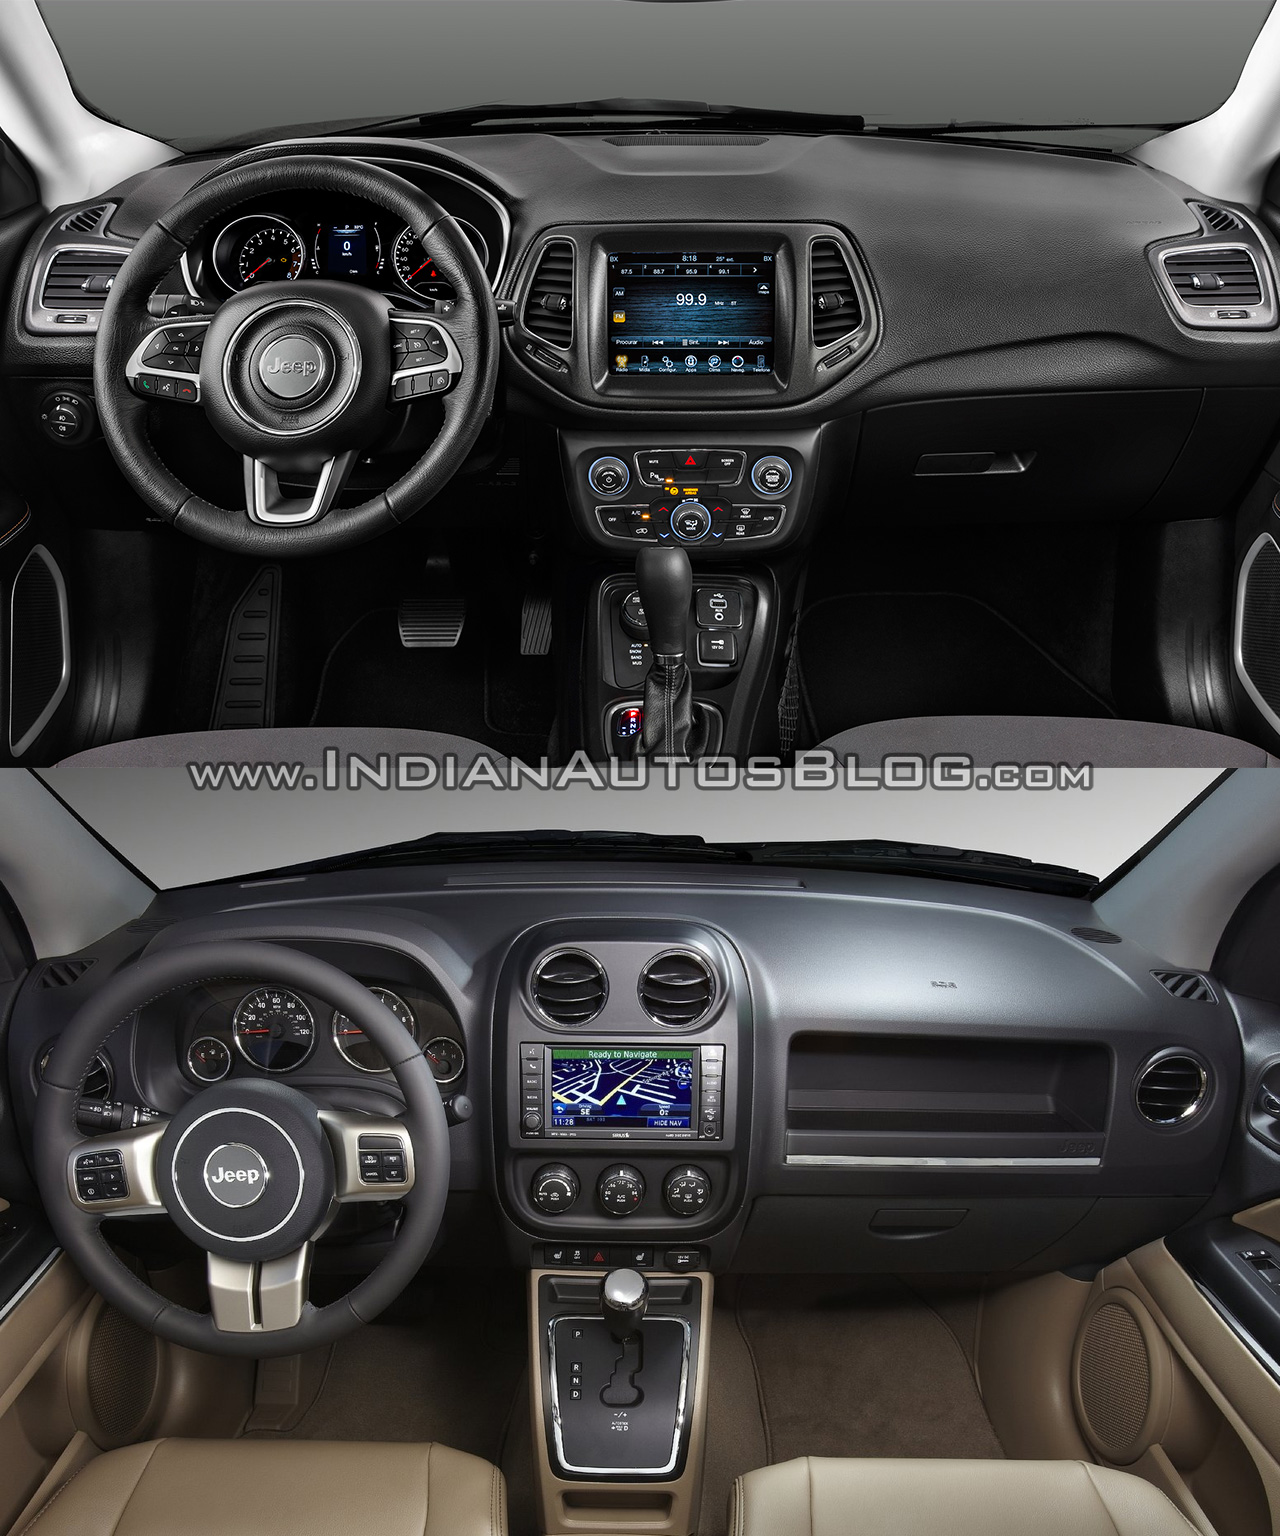 2017 jeep compass vs 2011 jeep compass interior. Black Bedroom Furniture Sets. Home Design Ideas